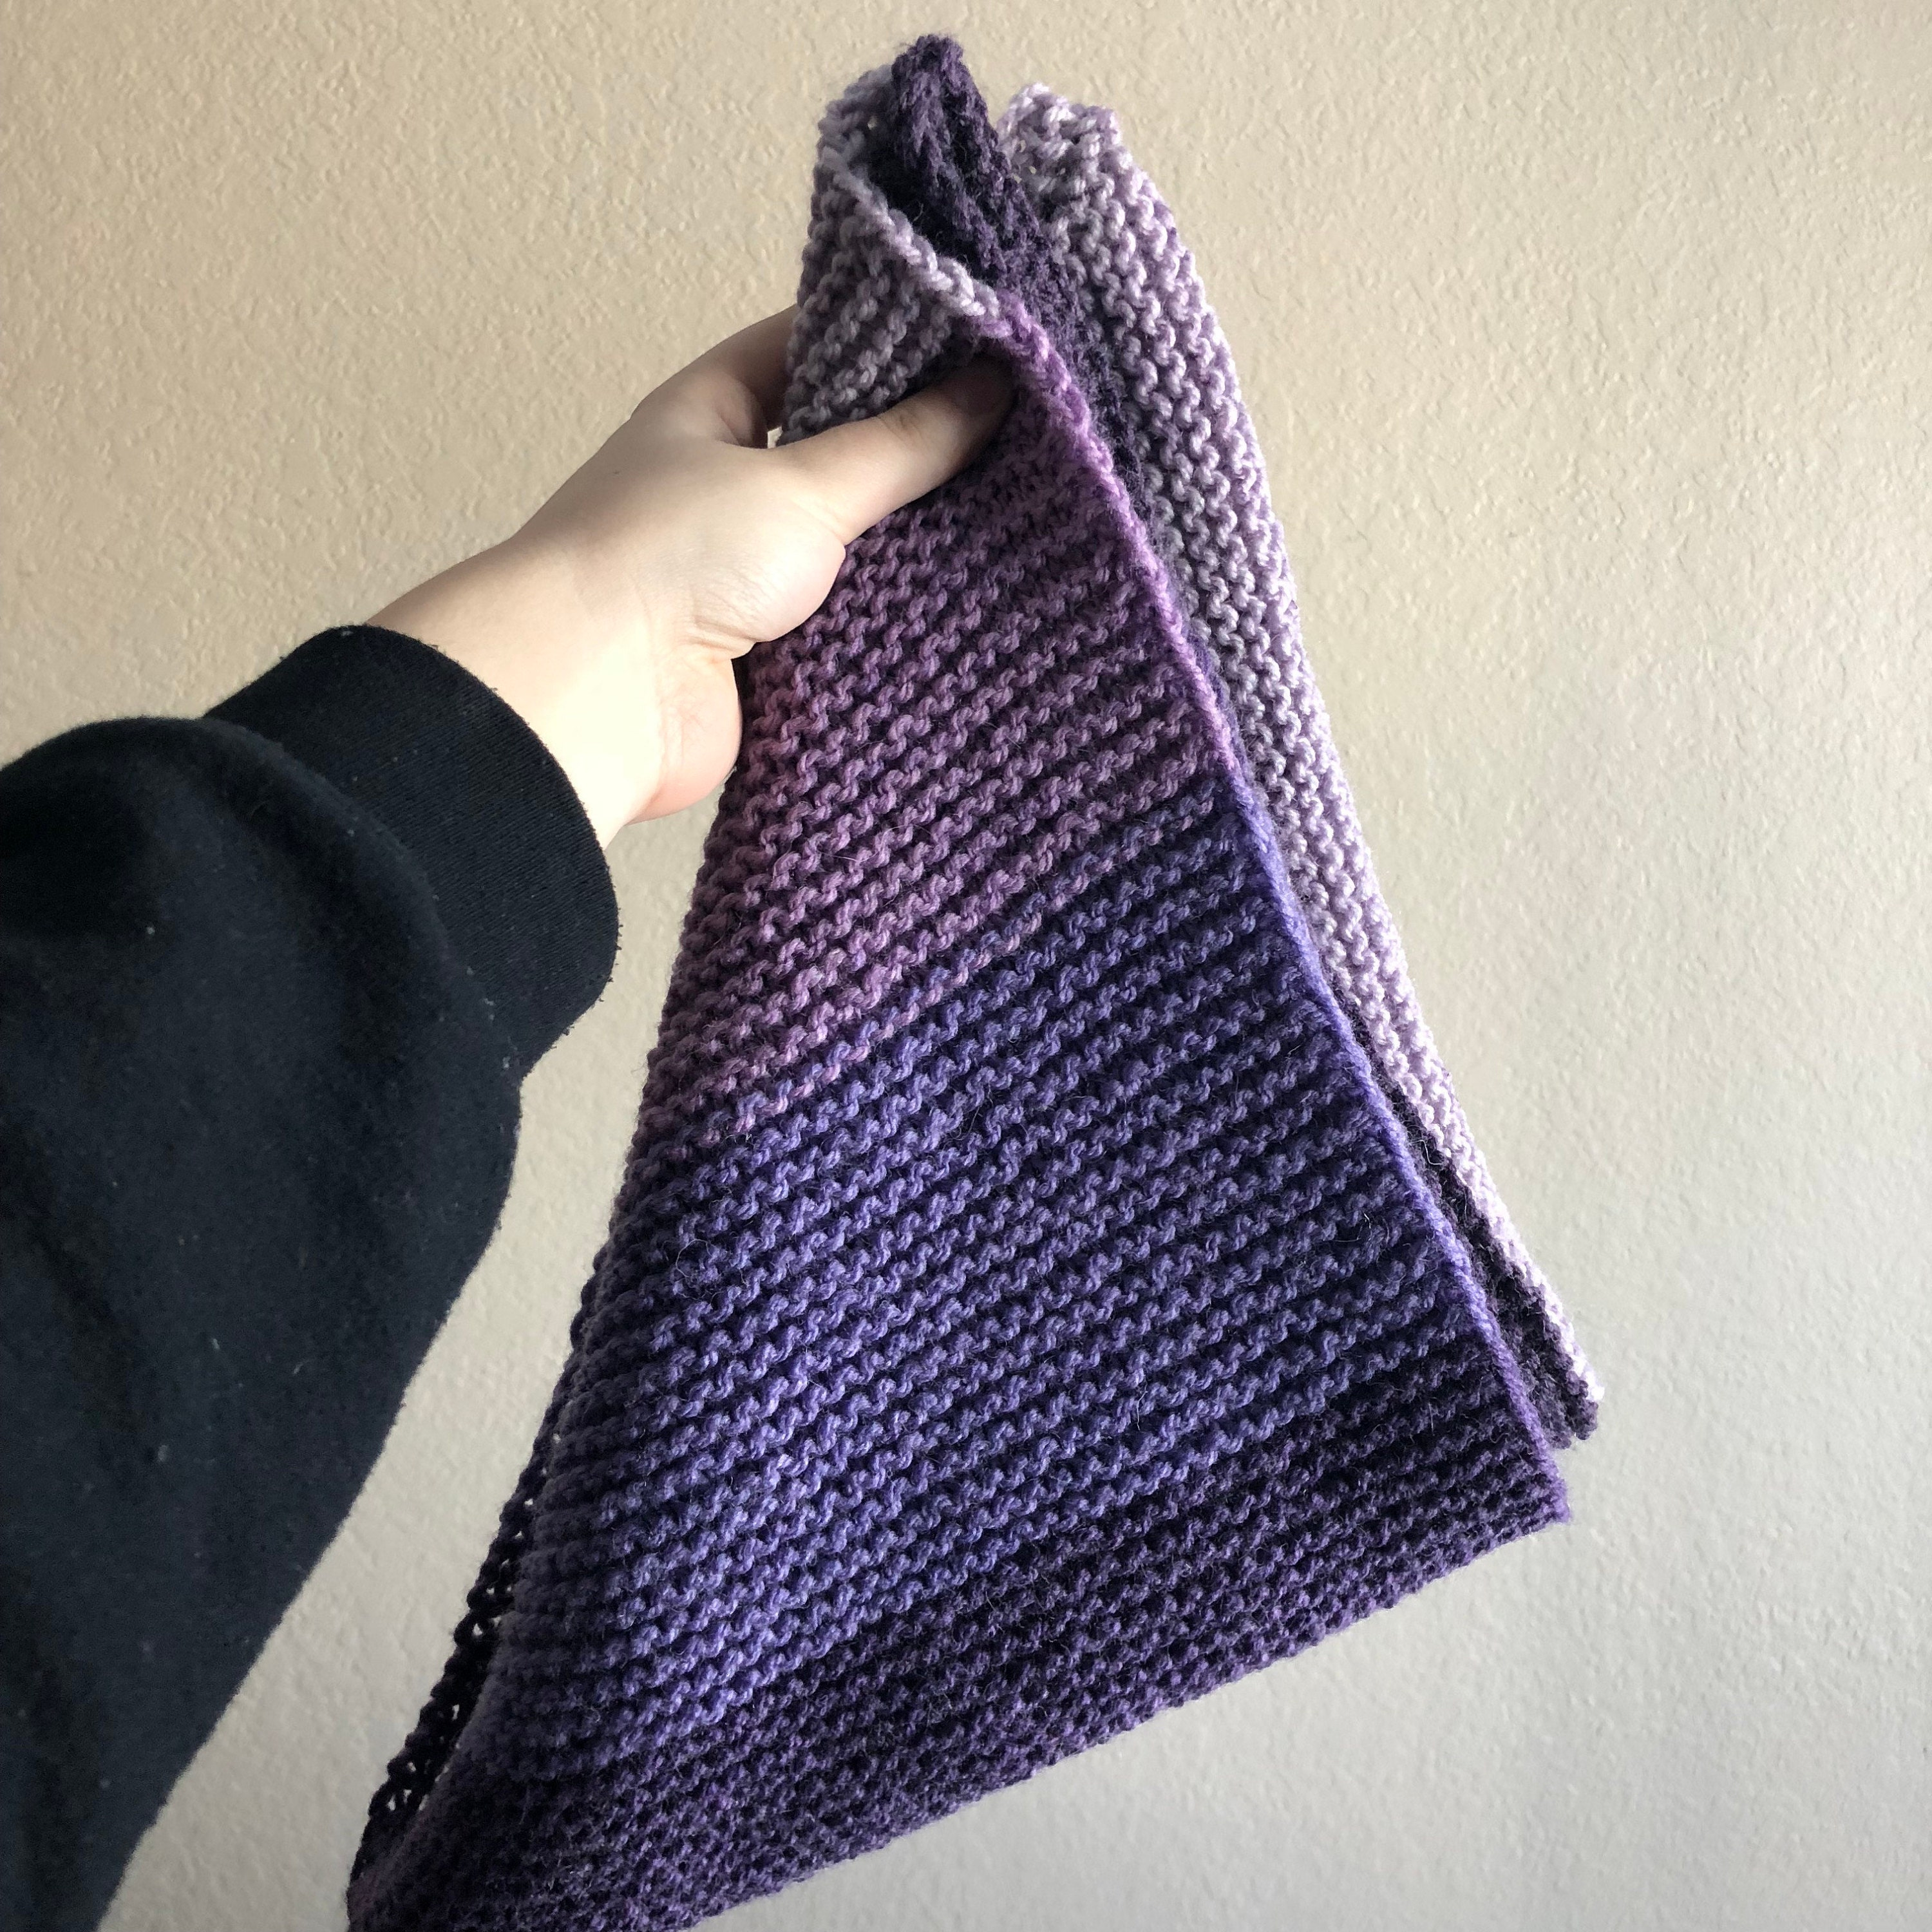 Person holding a knitted shawl